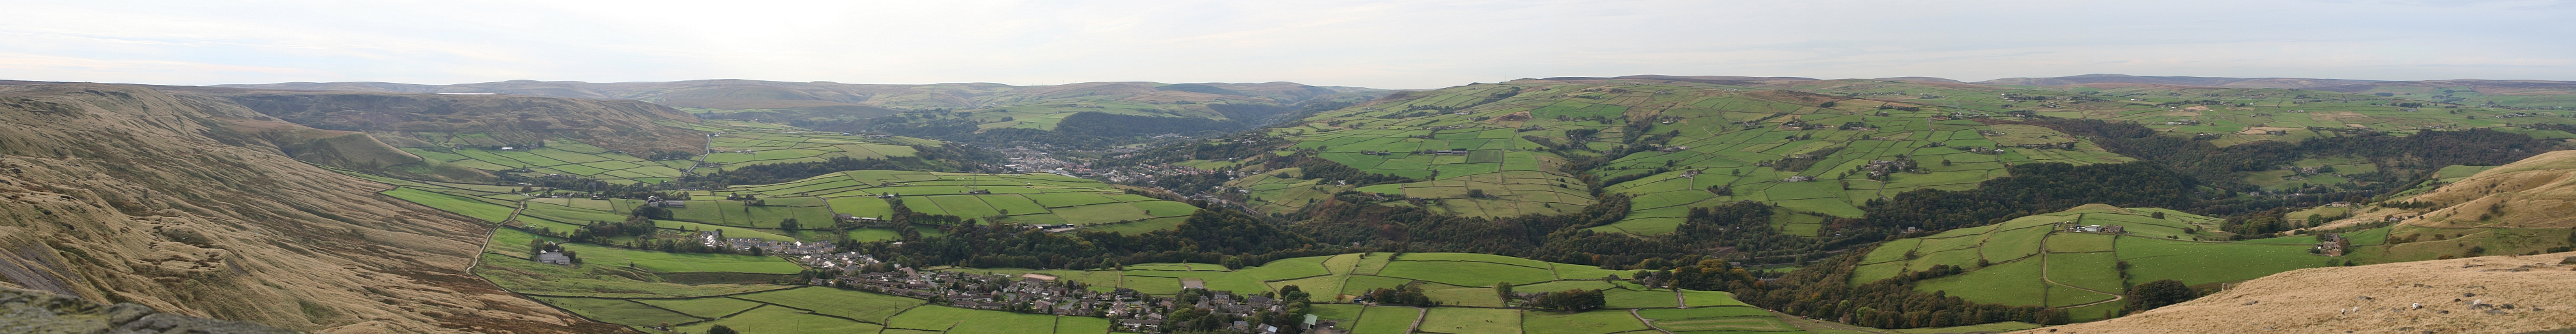 Panorama of the Calder Valley with the town of Todmorden, West Yorkshire from a balcony of Stoodley Pike